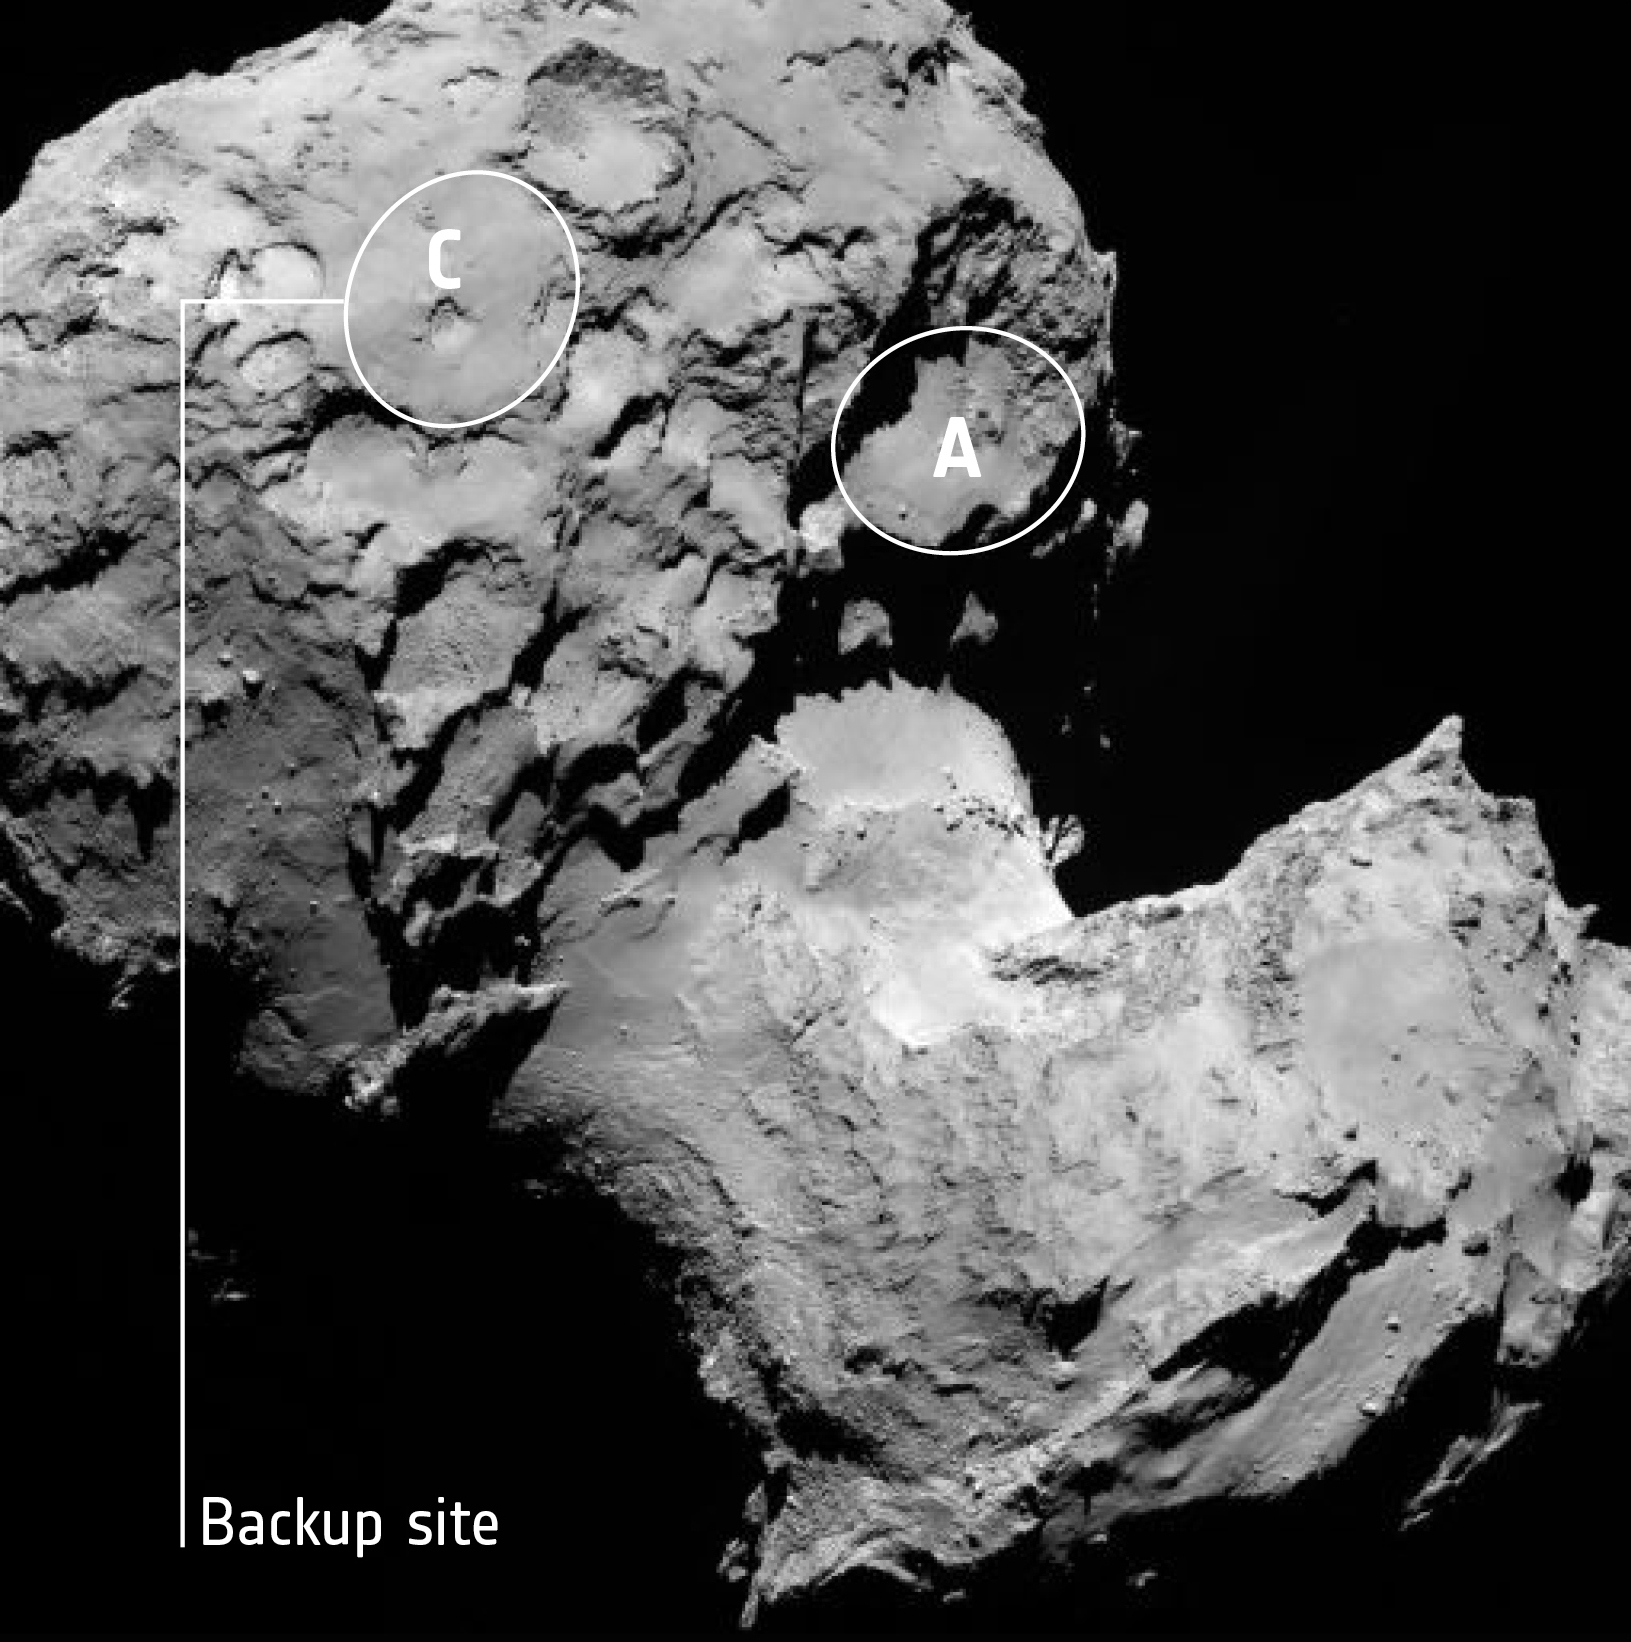 philae comet lander nasa - photo #2